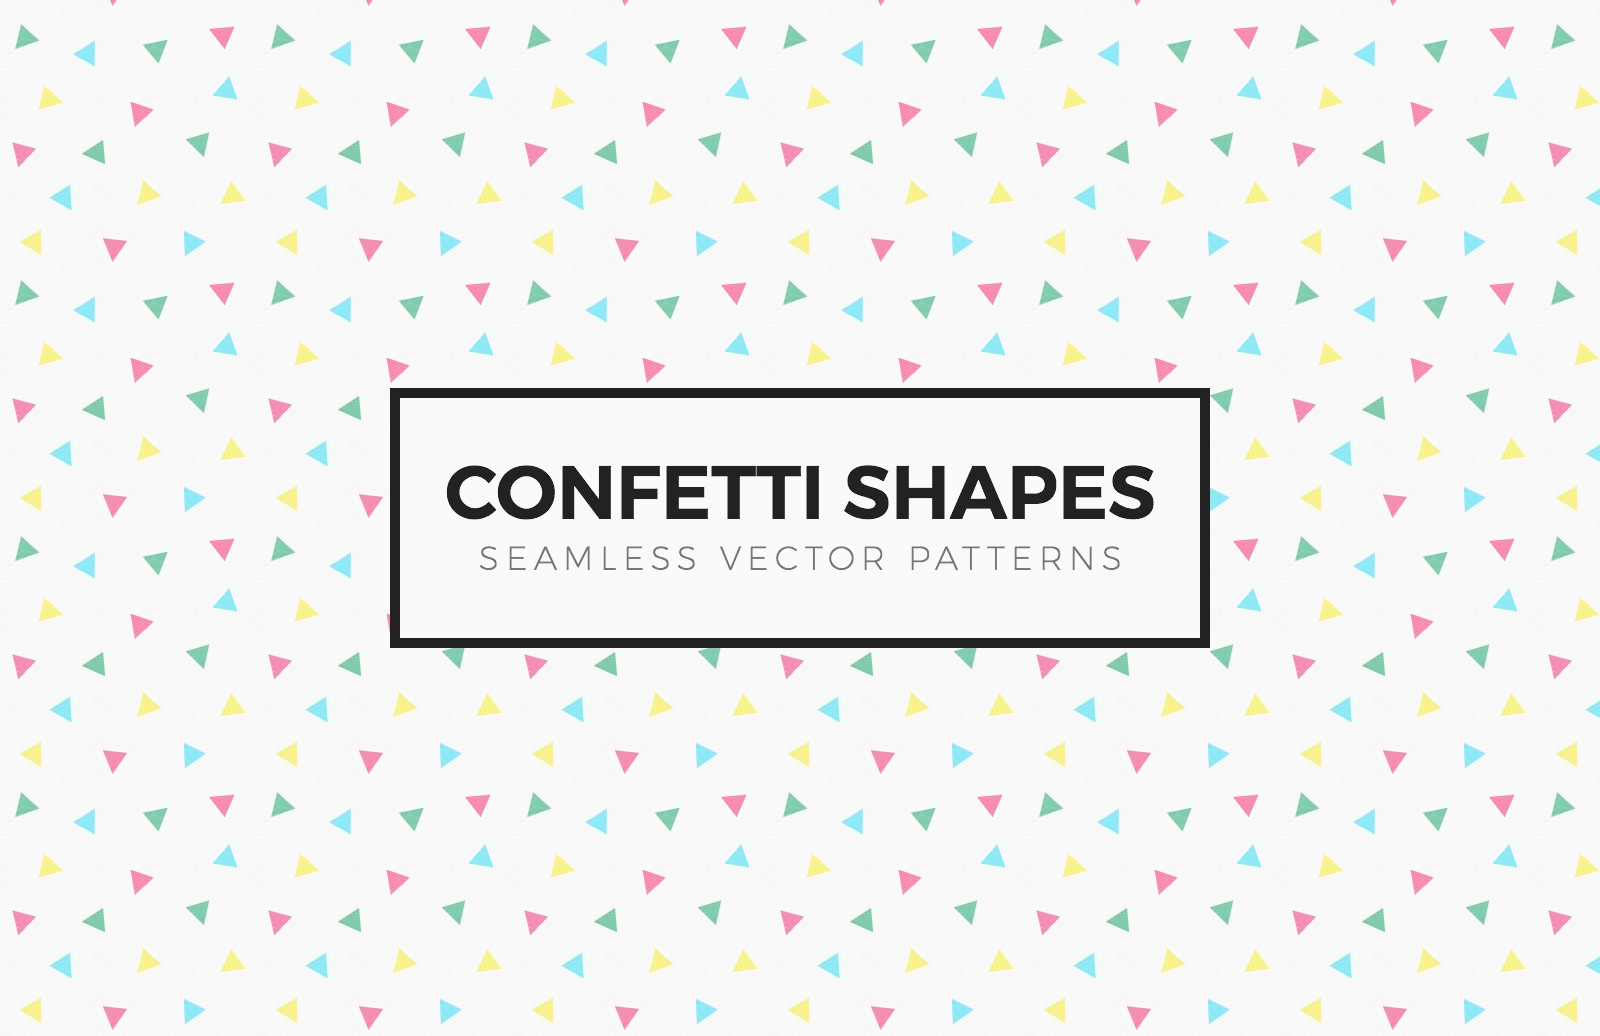 confetti shapes seamless patterns 1